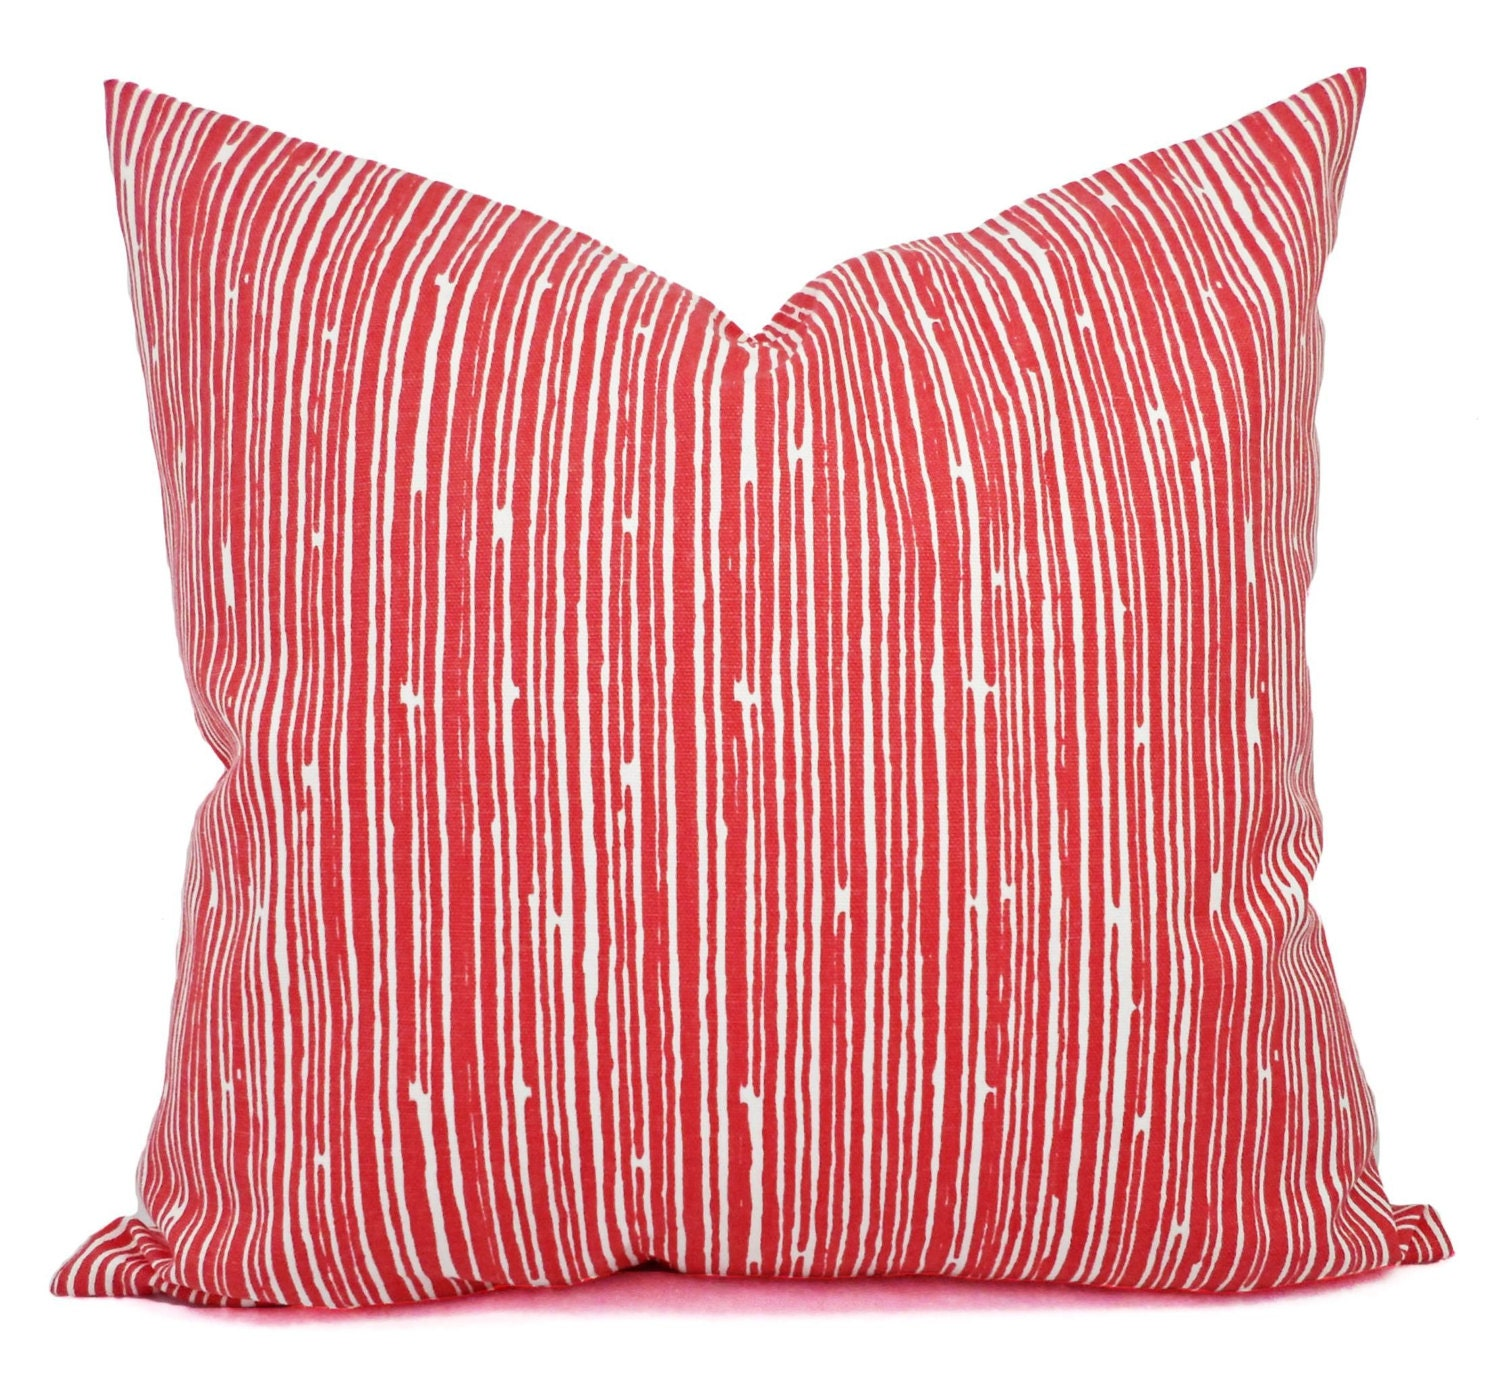 Throw Pillows With Coral : Two Coral Throw Pillows Pillows Coral Stripe Decorative